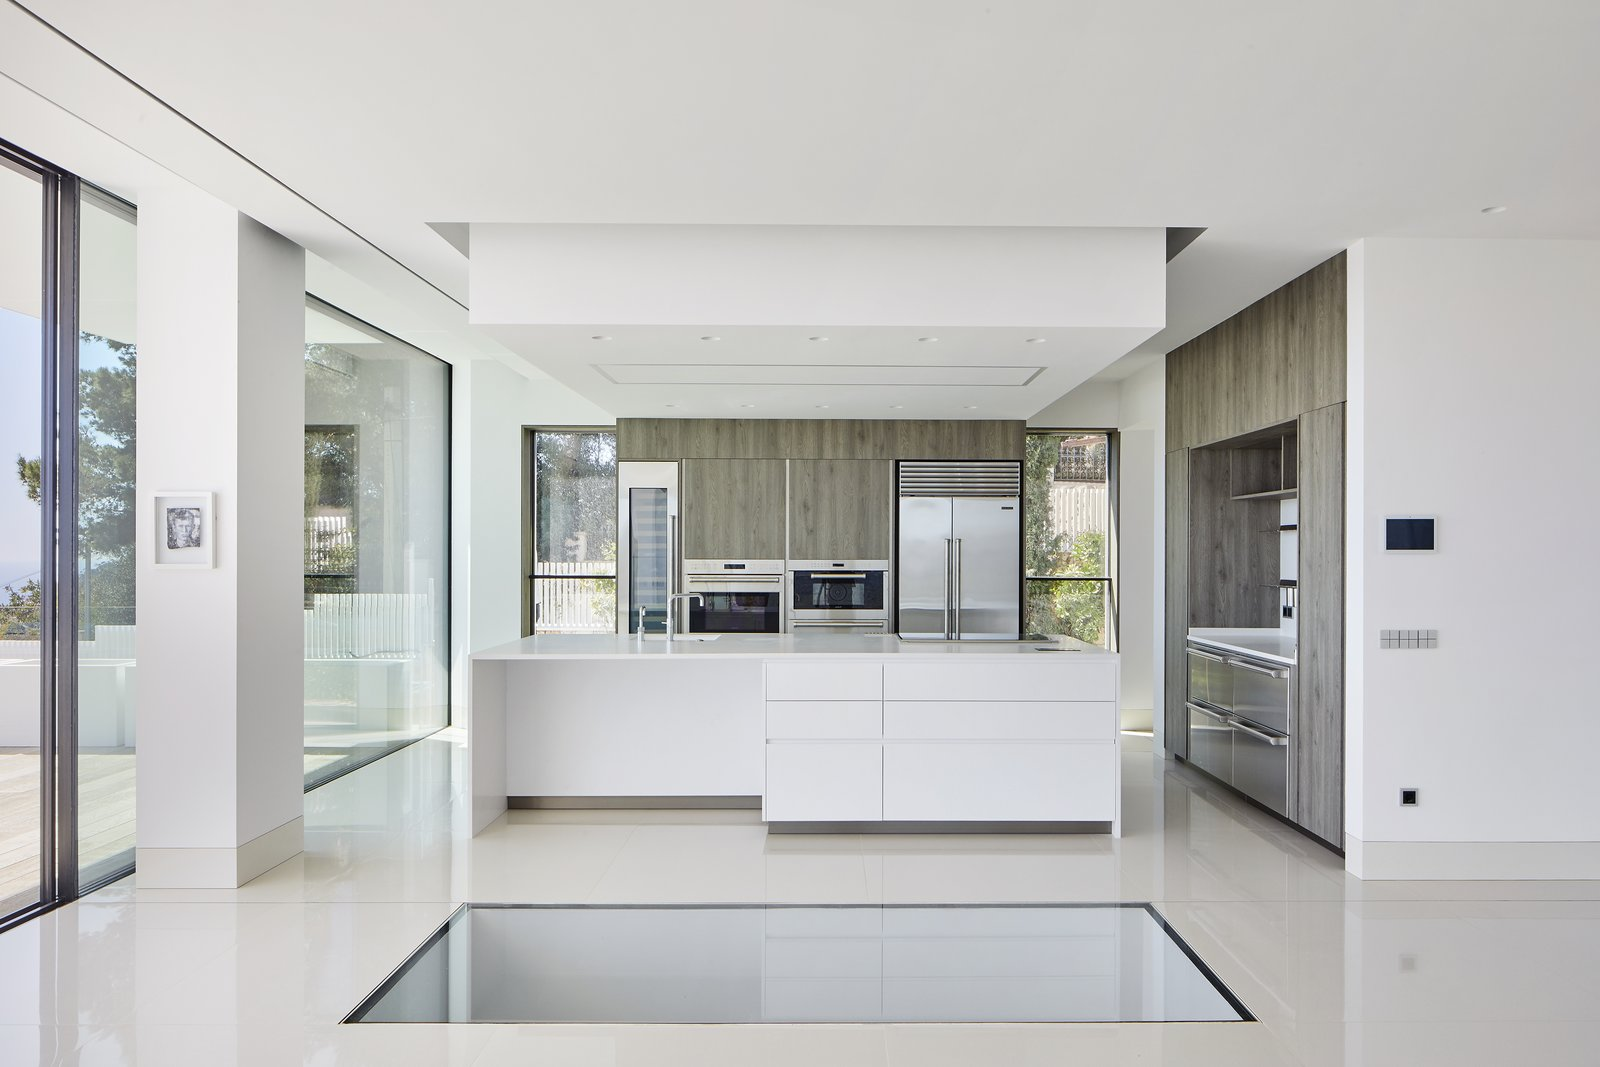 Kitchen, Wall Oven, White, Metal, Microwave, Wine Cooler, Drop In, Laminate, Ceiling, Granite, Range, Range Hood, Dishwasher, Ice Maker, Table, Beverage Center, Cooktops, Wood, Refrigerator, and Porcelain Tile Kitchen.  Best Kitchen Beverage Center Range White Dishwasher Metal Wall Oven Photos from 廚房